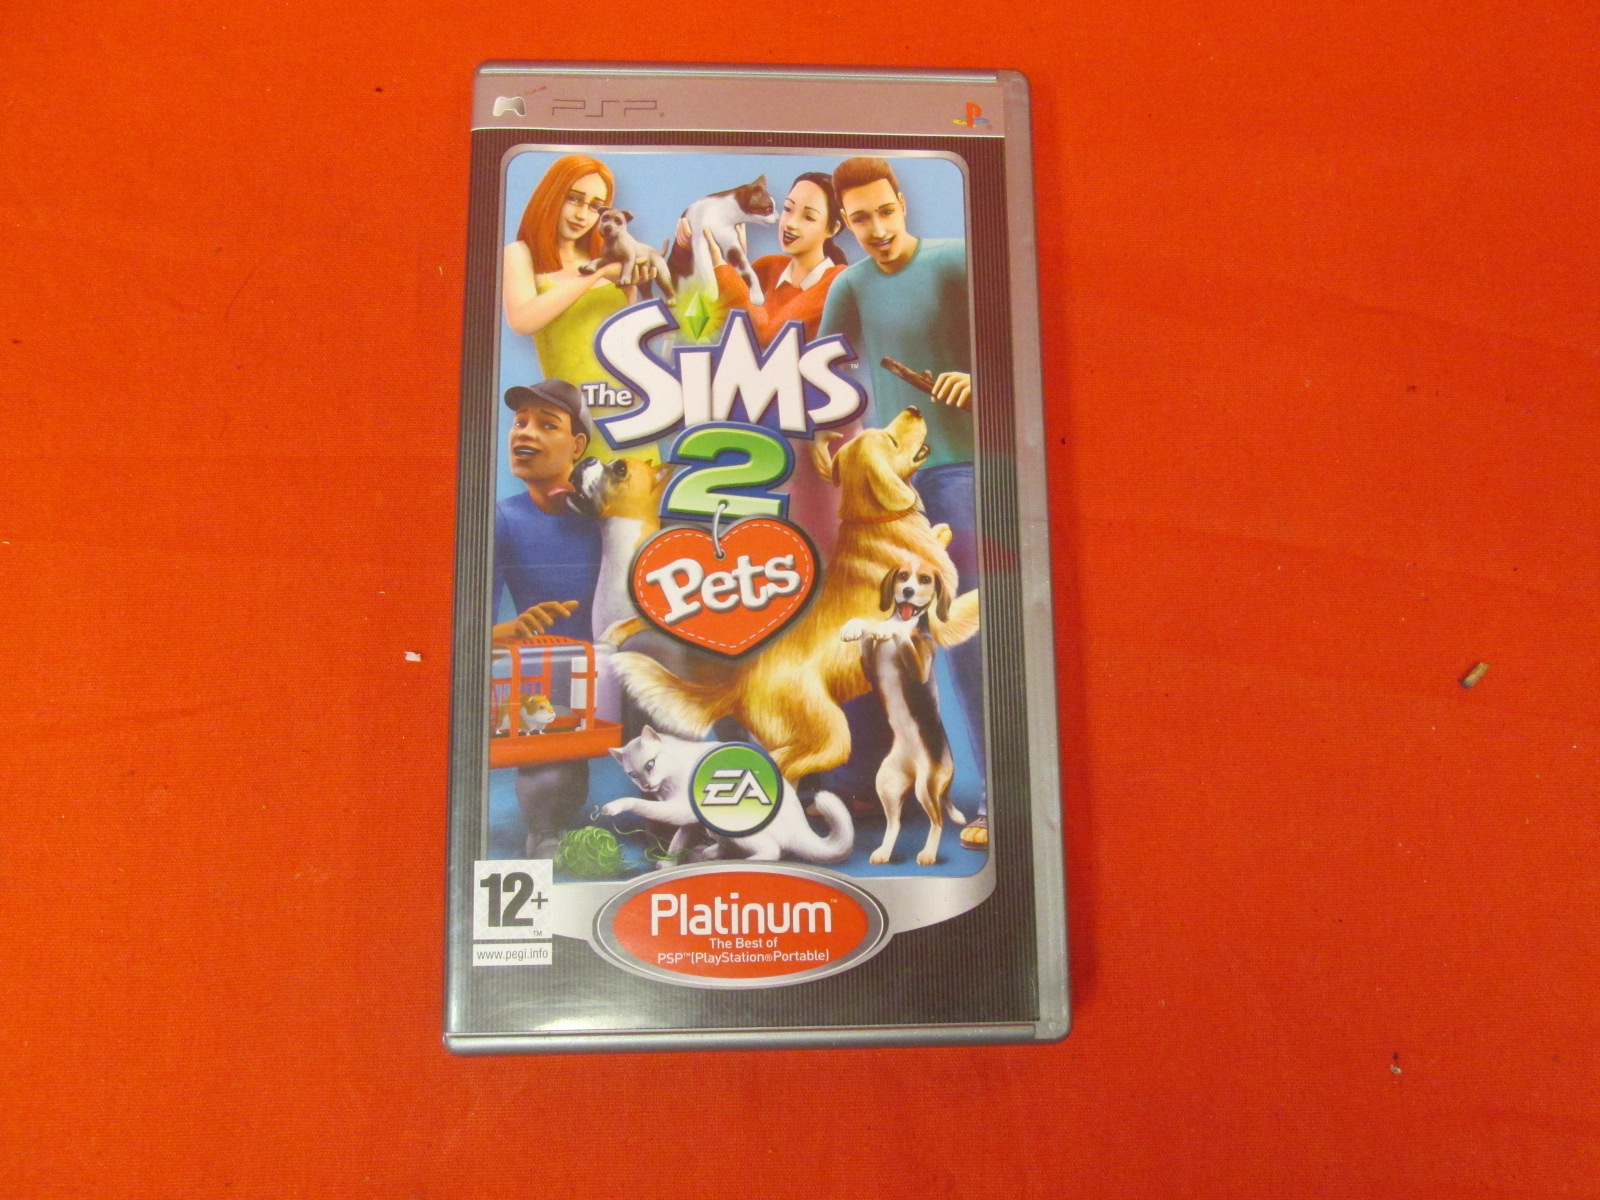 The Sims 2 Pets Platinum UK PAL Version For PSP